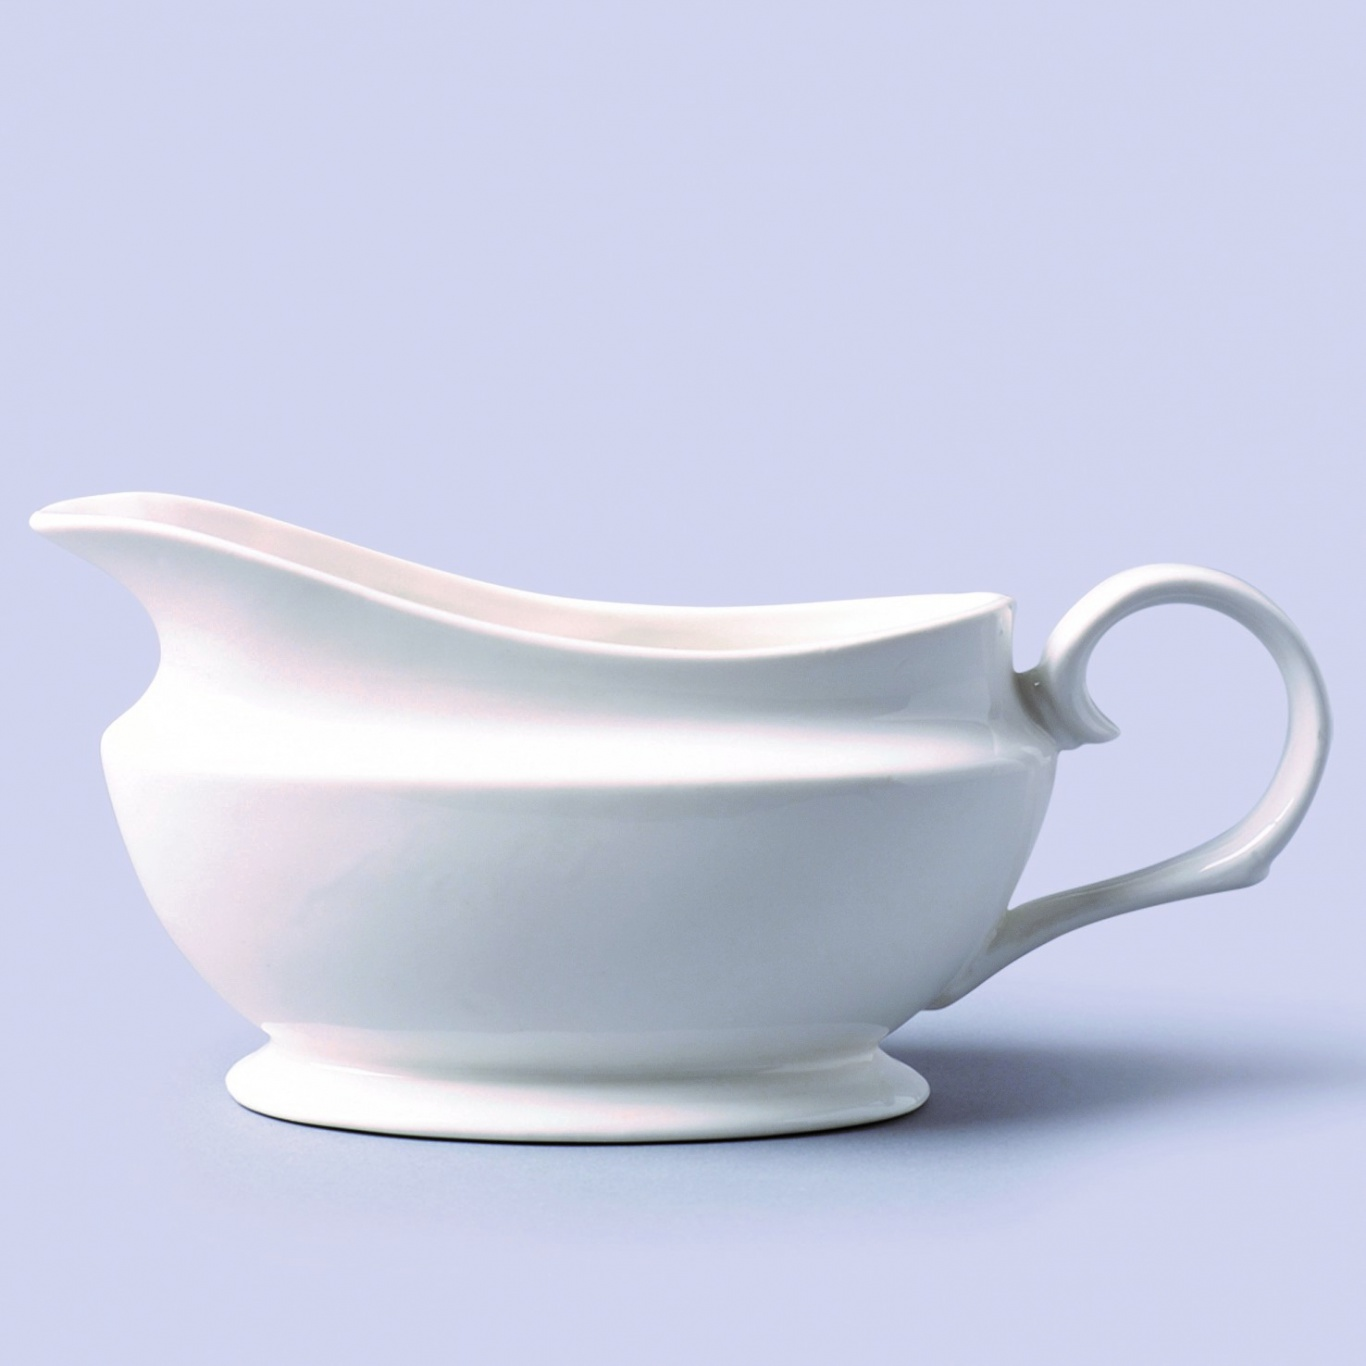 Image of Gravy Boat